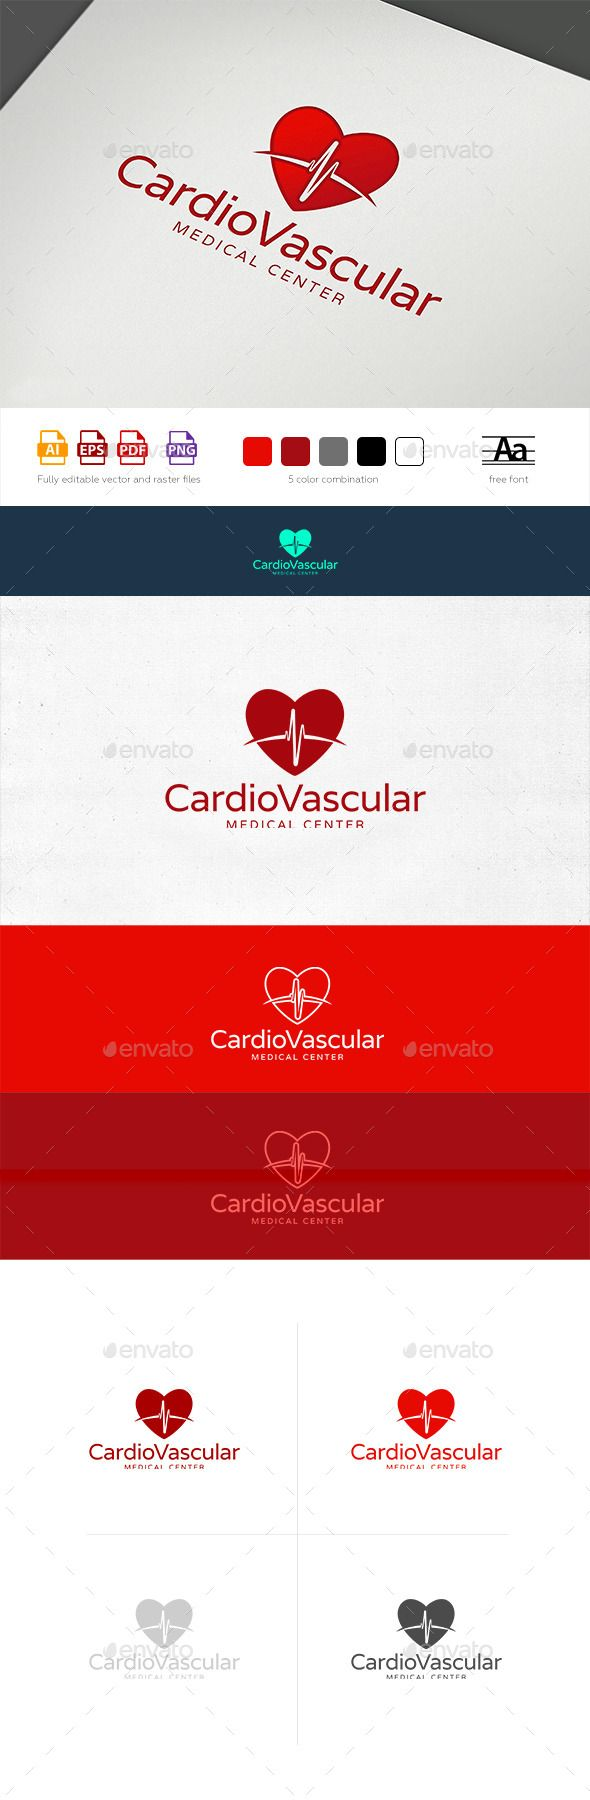 Heart rhythm logo template fonts logos icons pinterest logo buy heart rhythm logo template by osokinoz on graphicriver exclusively crafted logo for any healthcare business or medical technician accmission Images